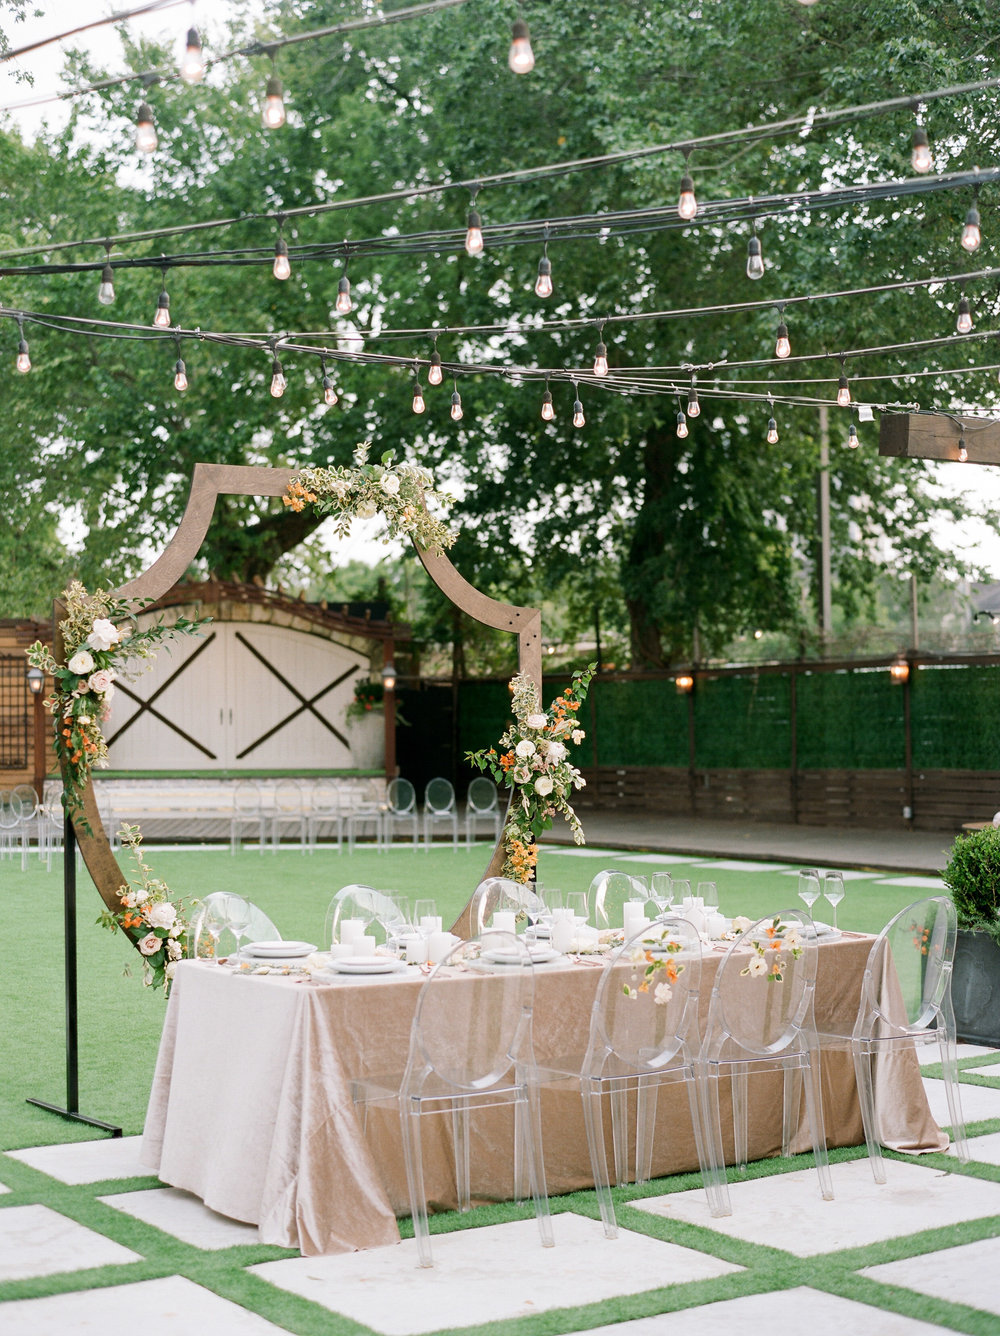 houston-wedding-planner-fine-art-luxury-designer-top-best-destination-austin-dallas-kelly-doonan-events-hughes-manor-13